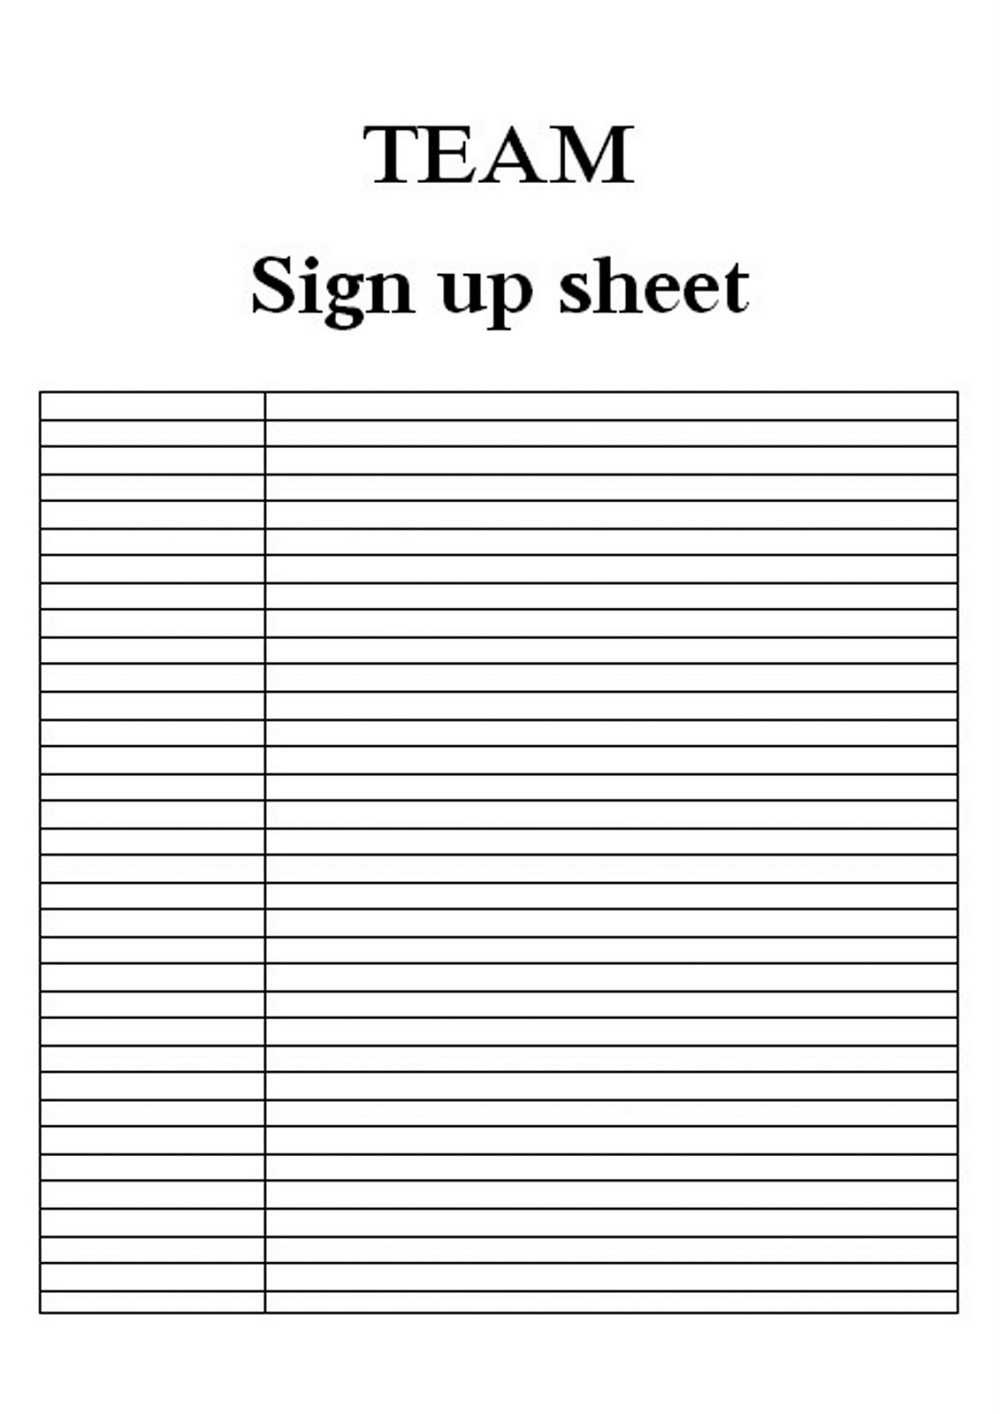 Free Sign Up Sheet Template | Hunecompany - Free Printable Sign Up Sheet